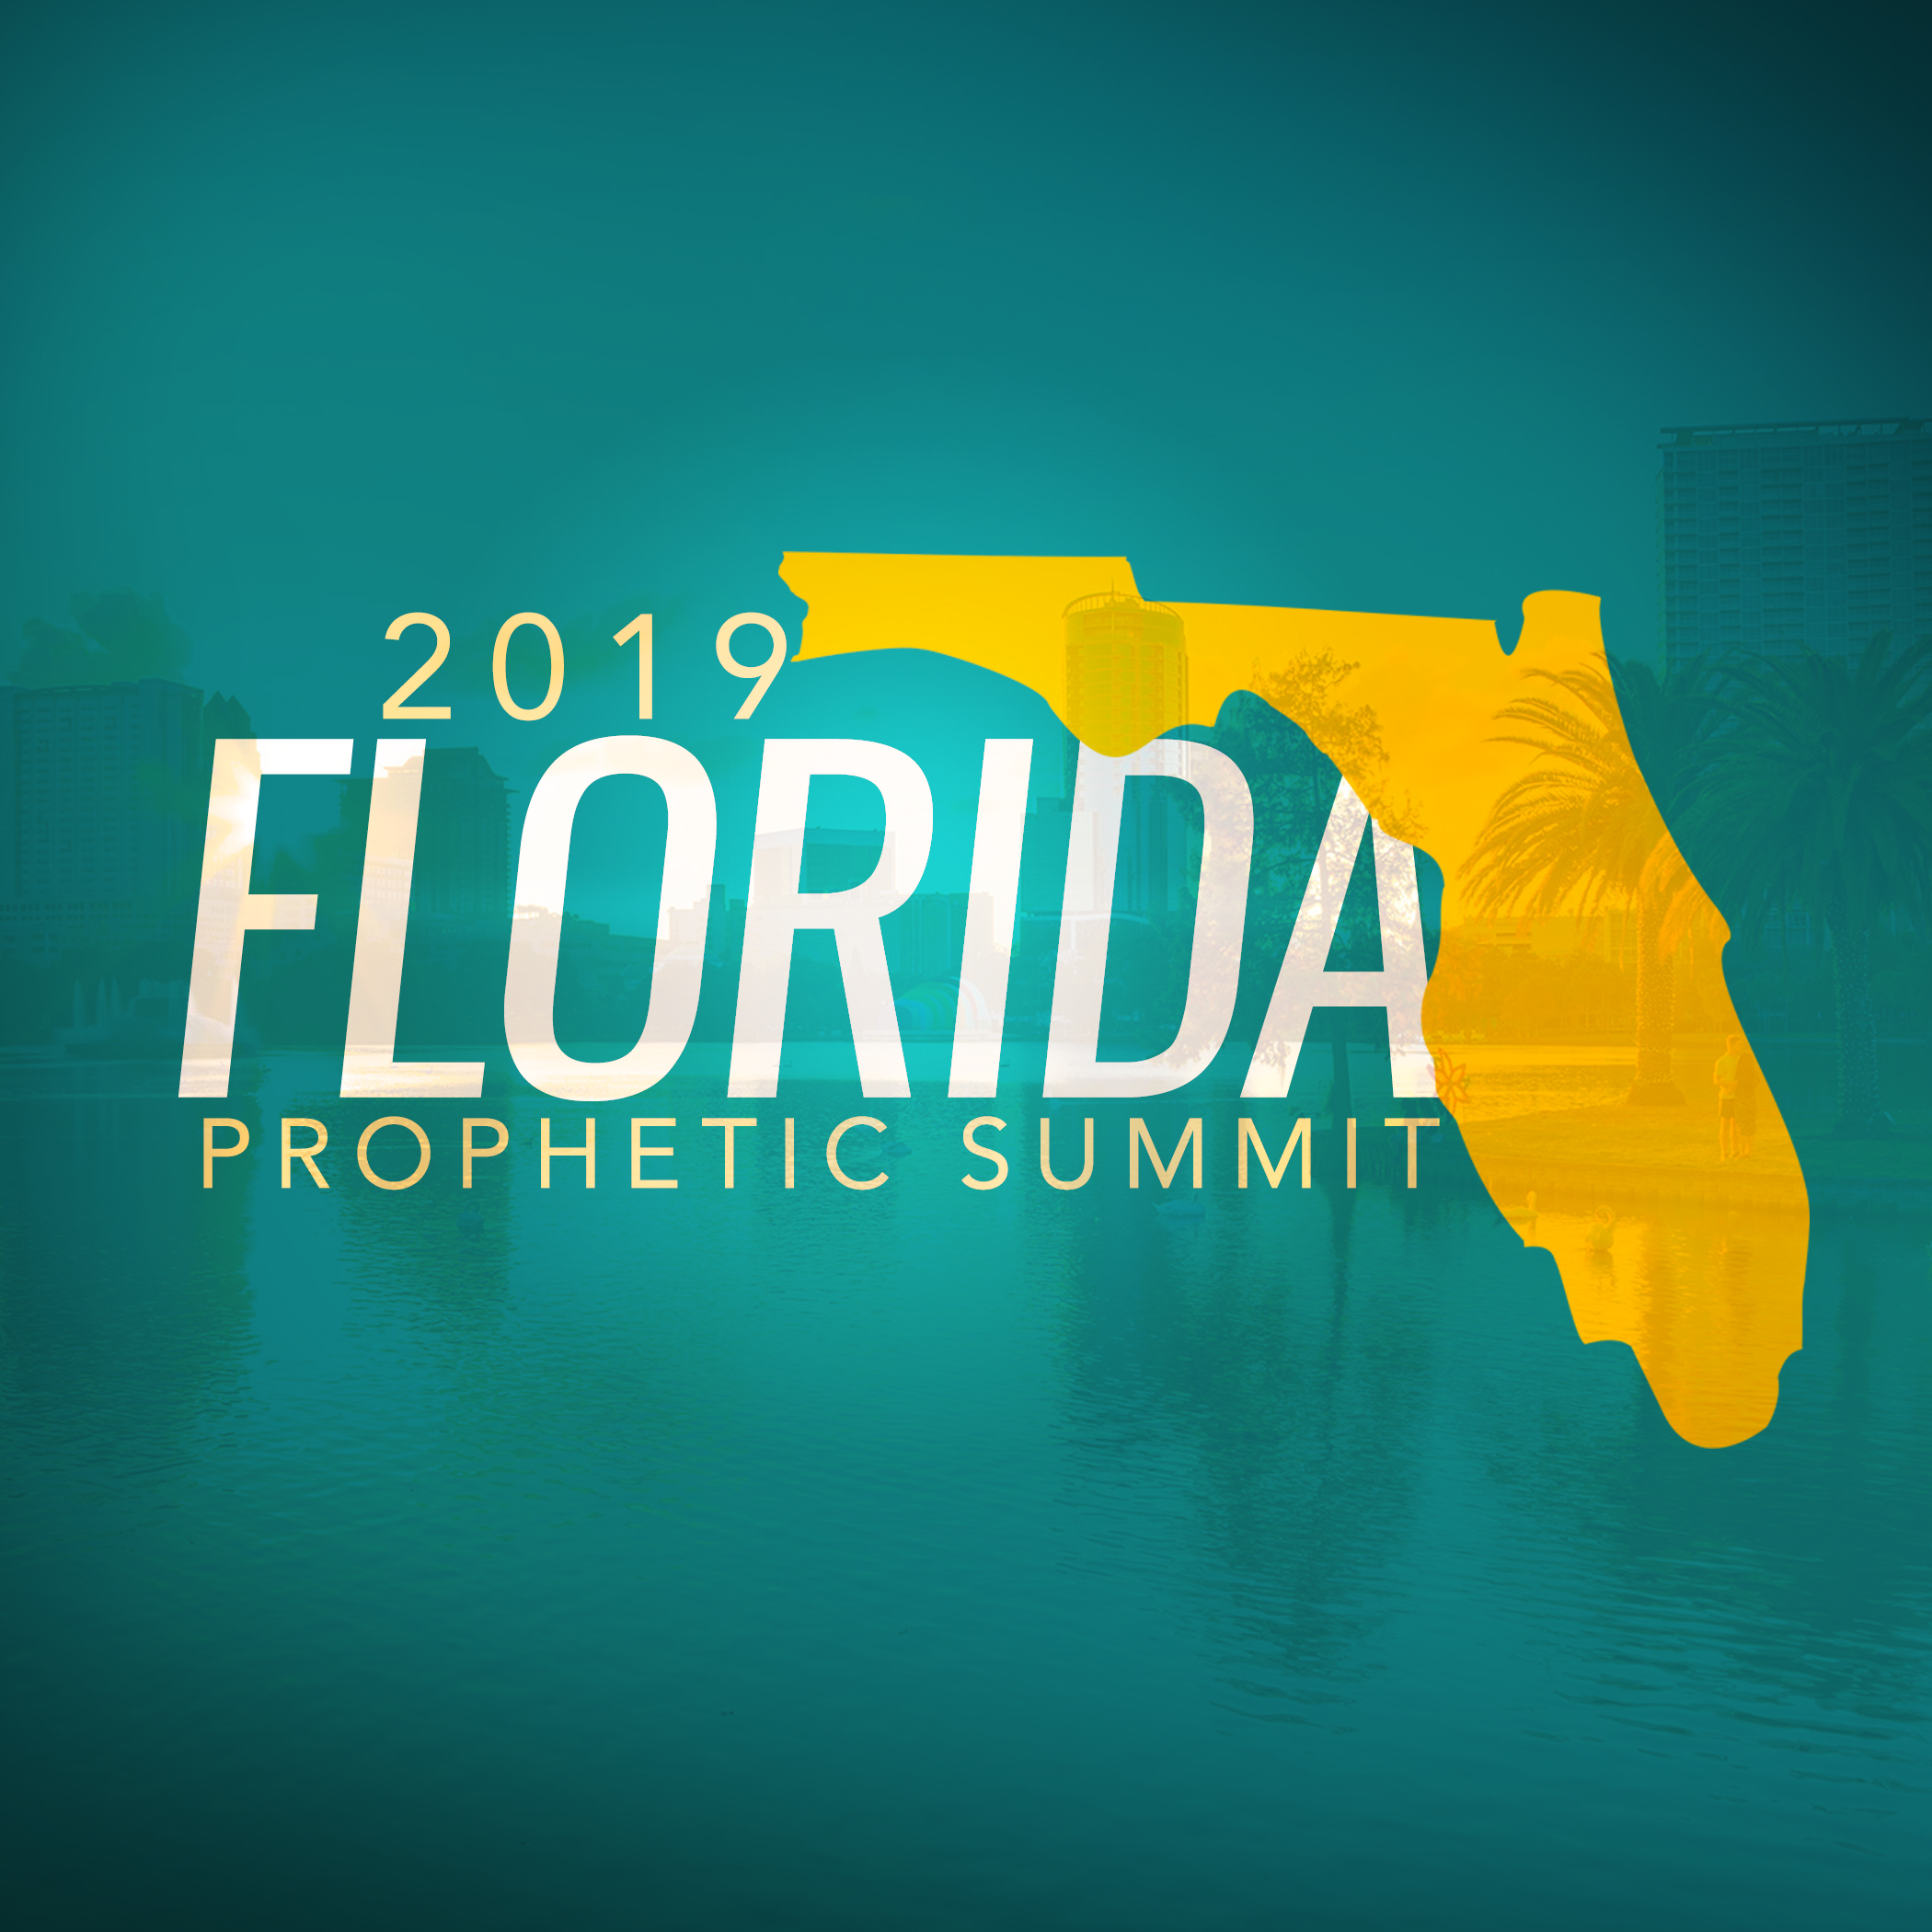 2019 Florida Prophetic Summit